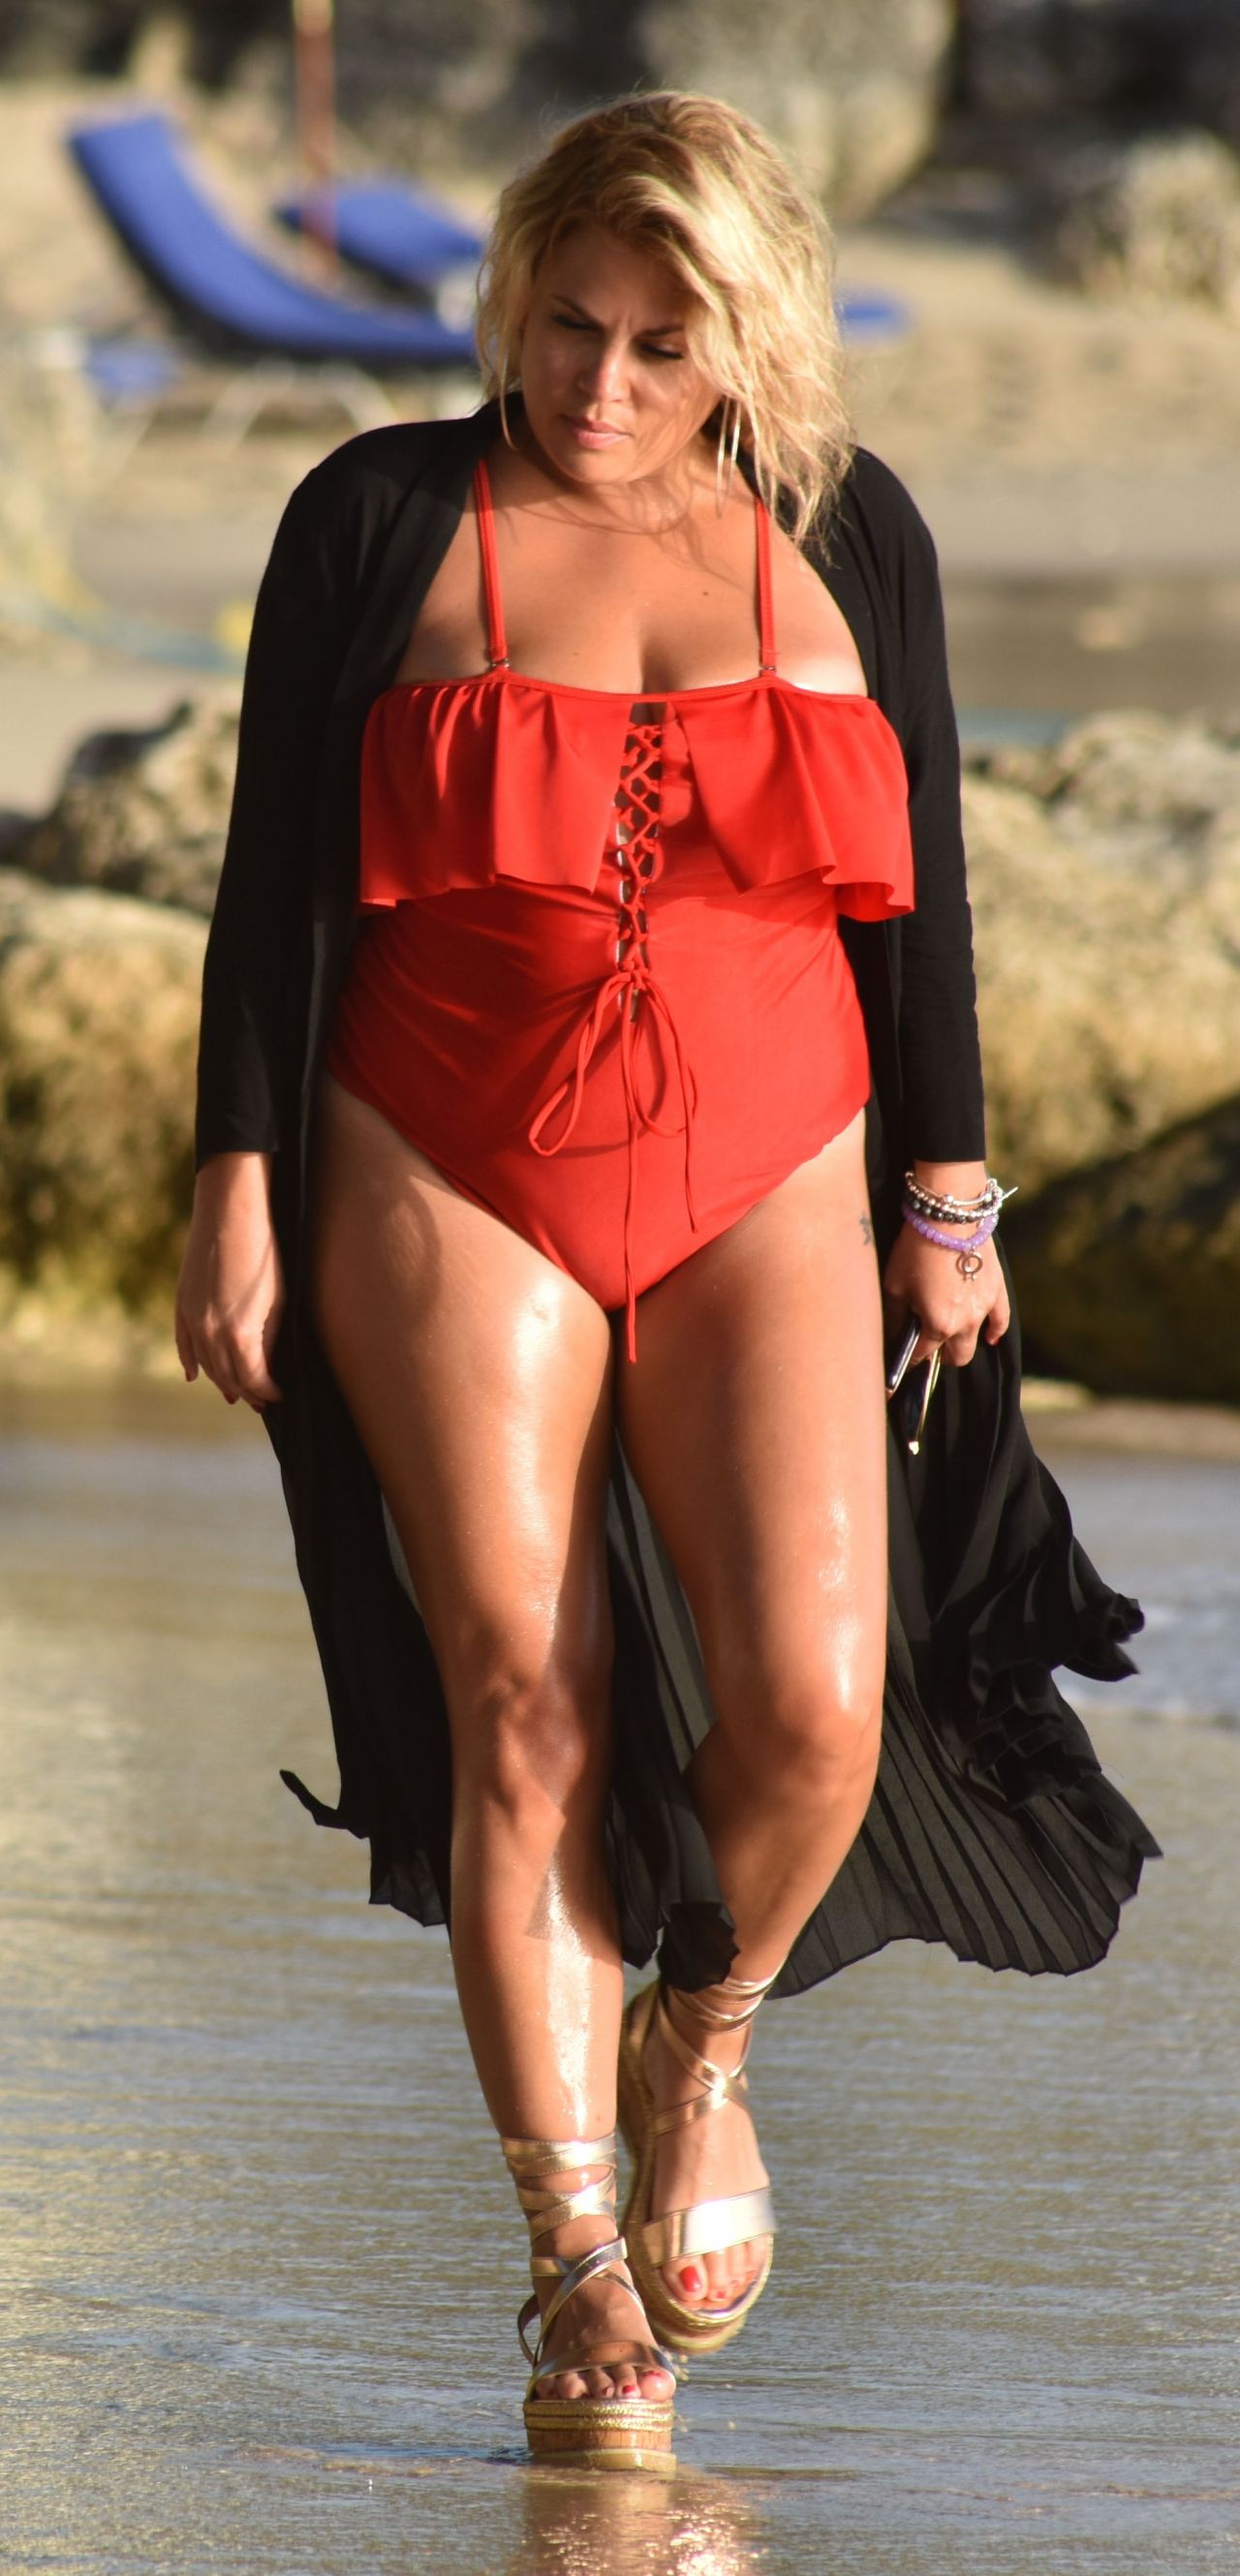 Nadia Essex In A Red Swimsuit Enjoying The Sun Sand Amp Sea